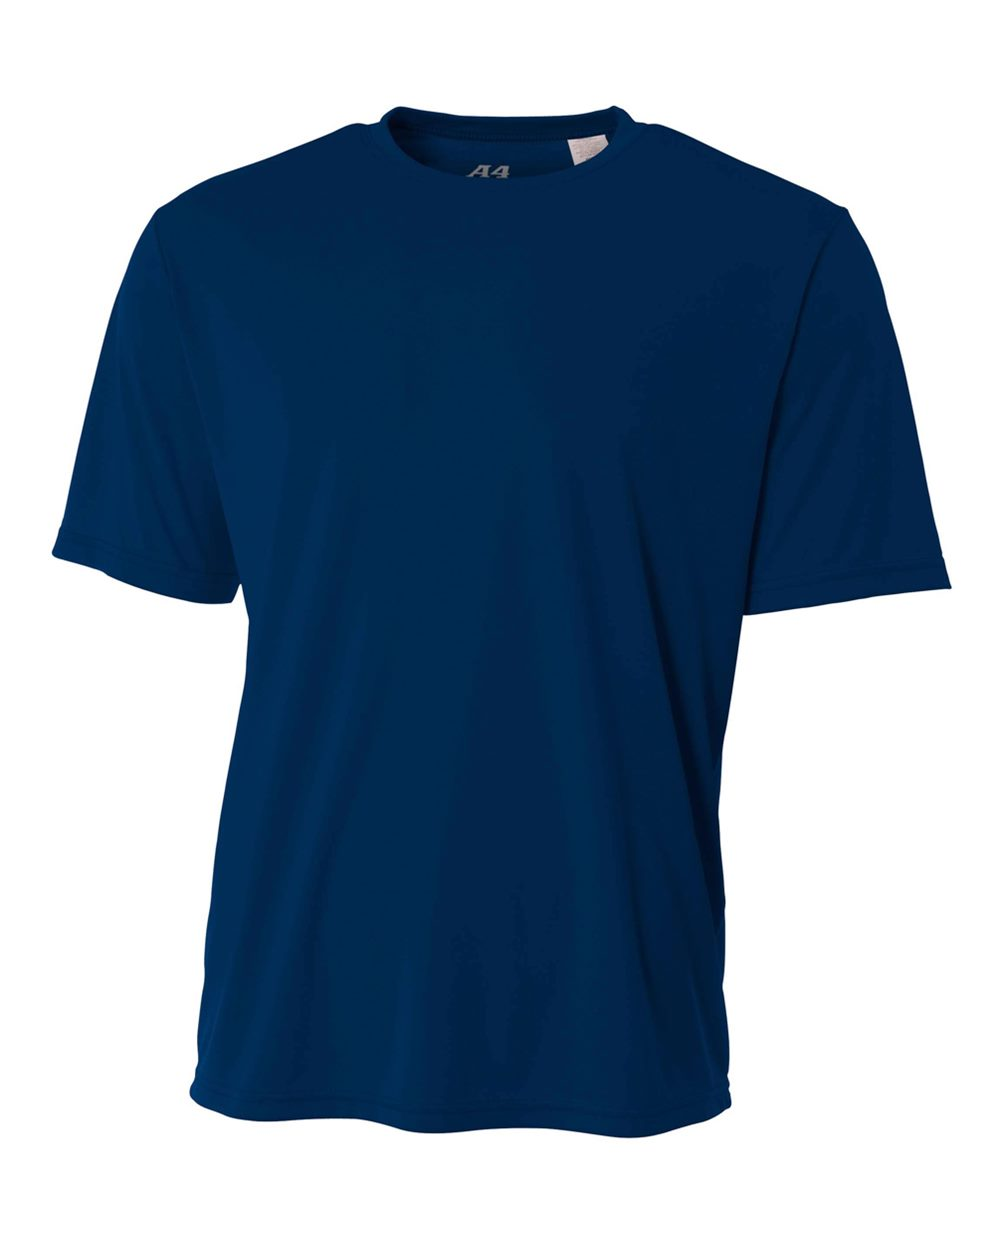 mw-polo-navy-blue.jpg